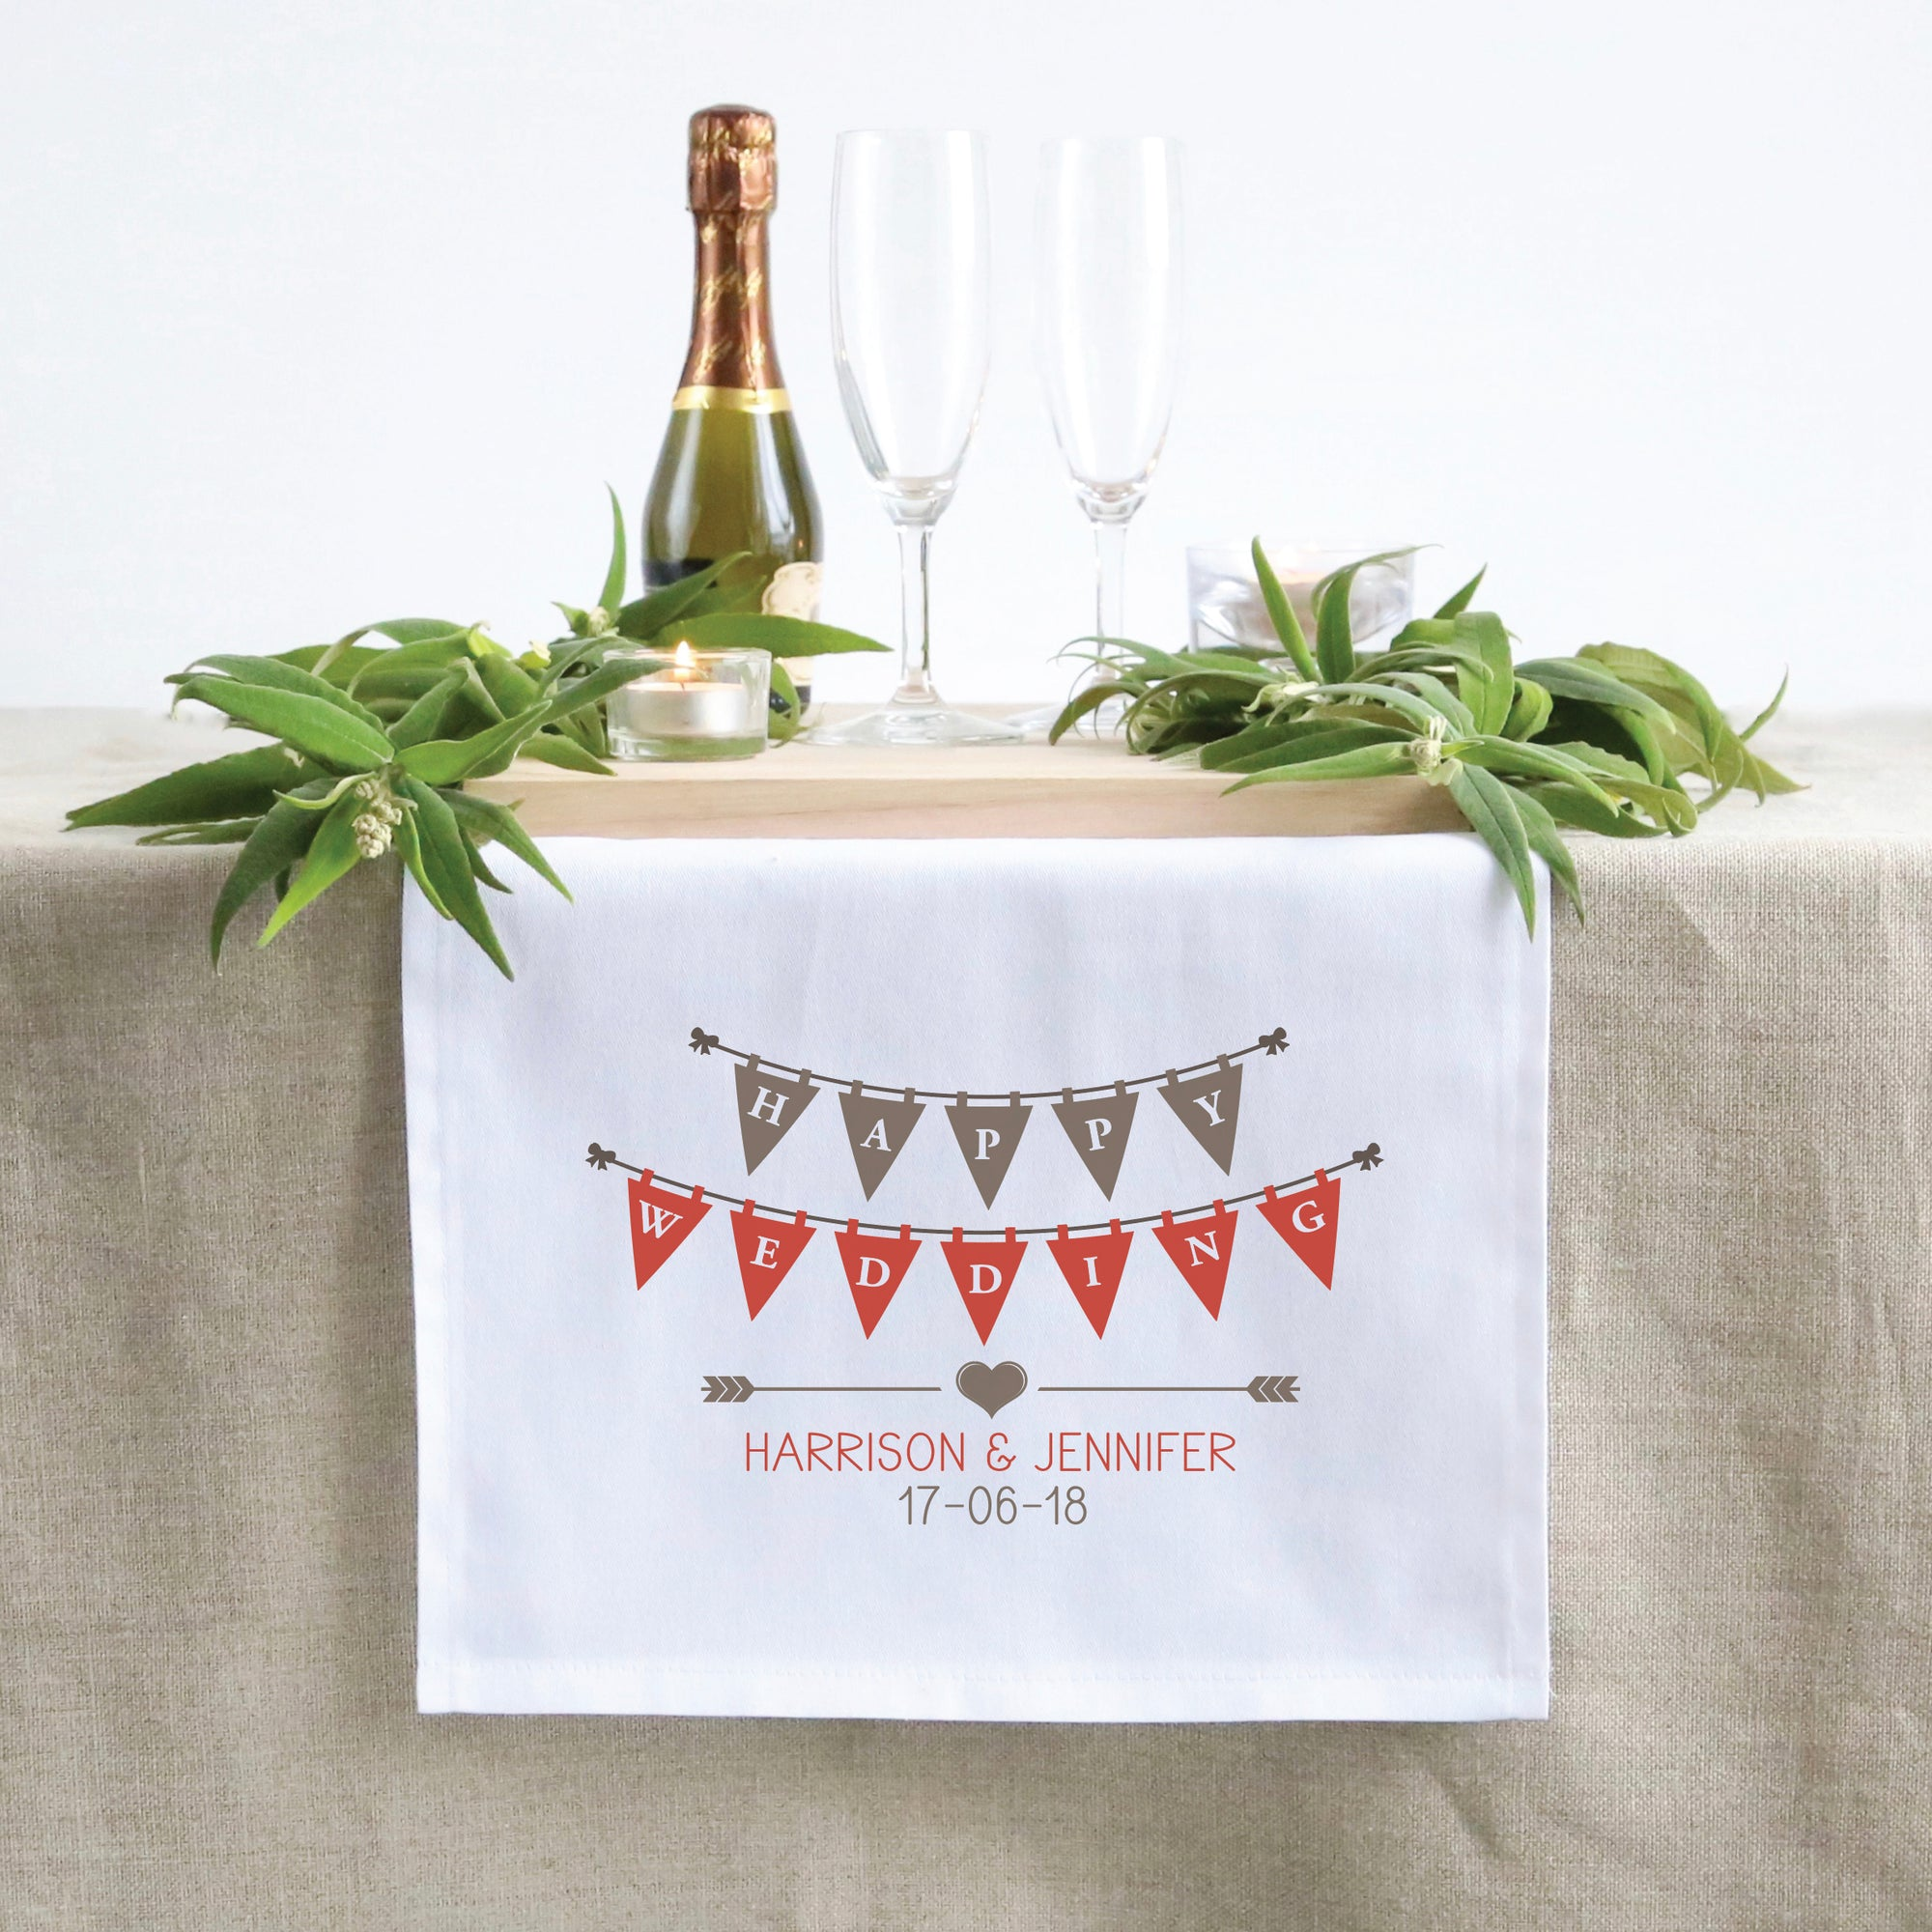 Bunting Table Runner (3 sizes)